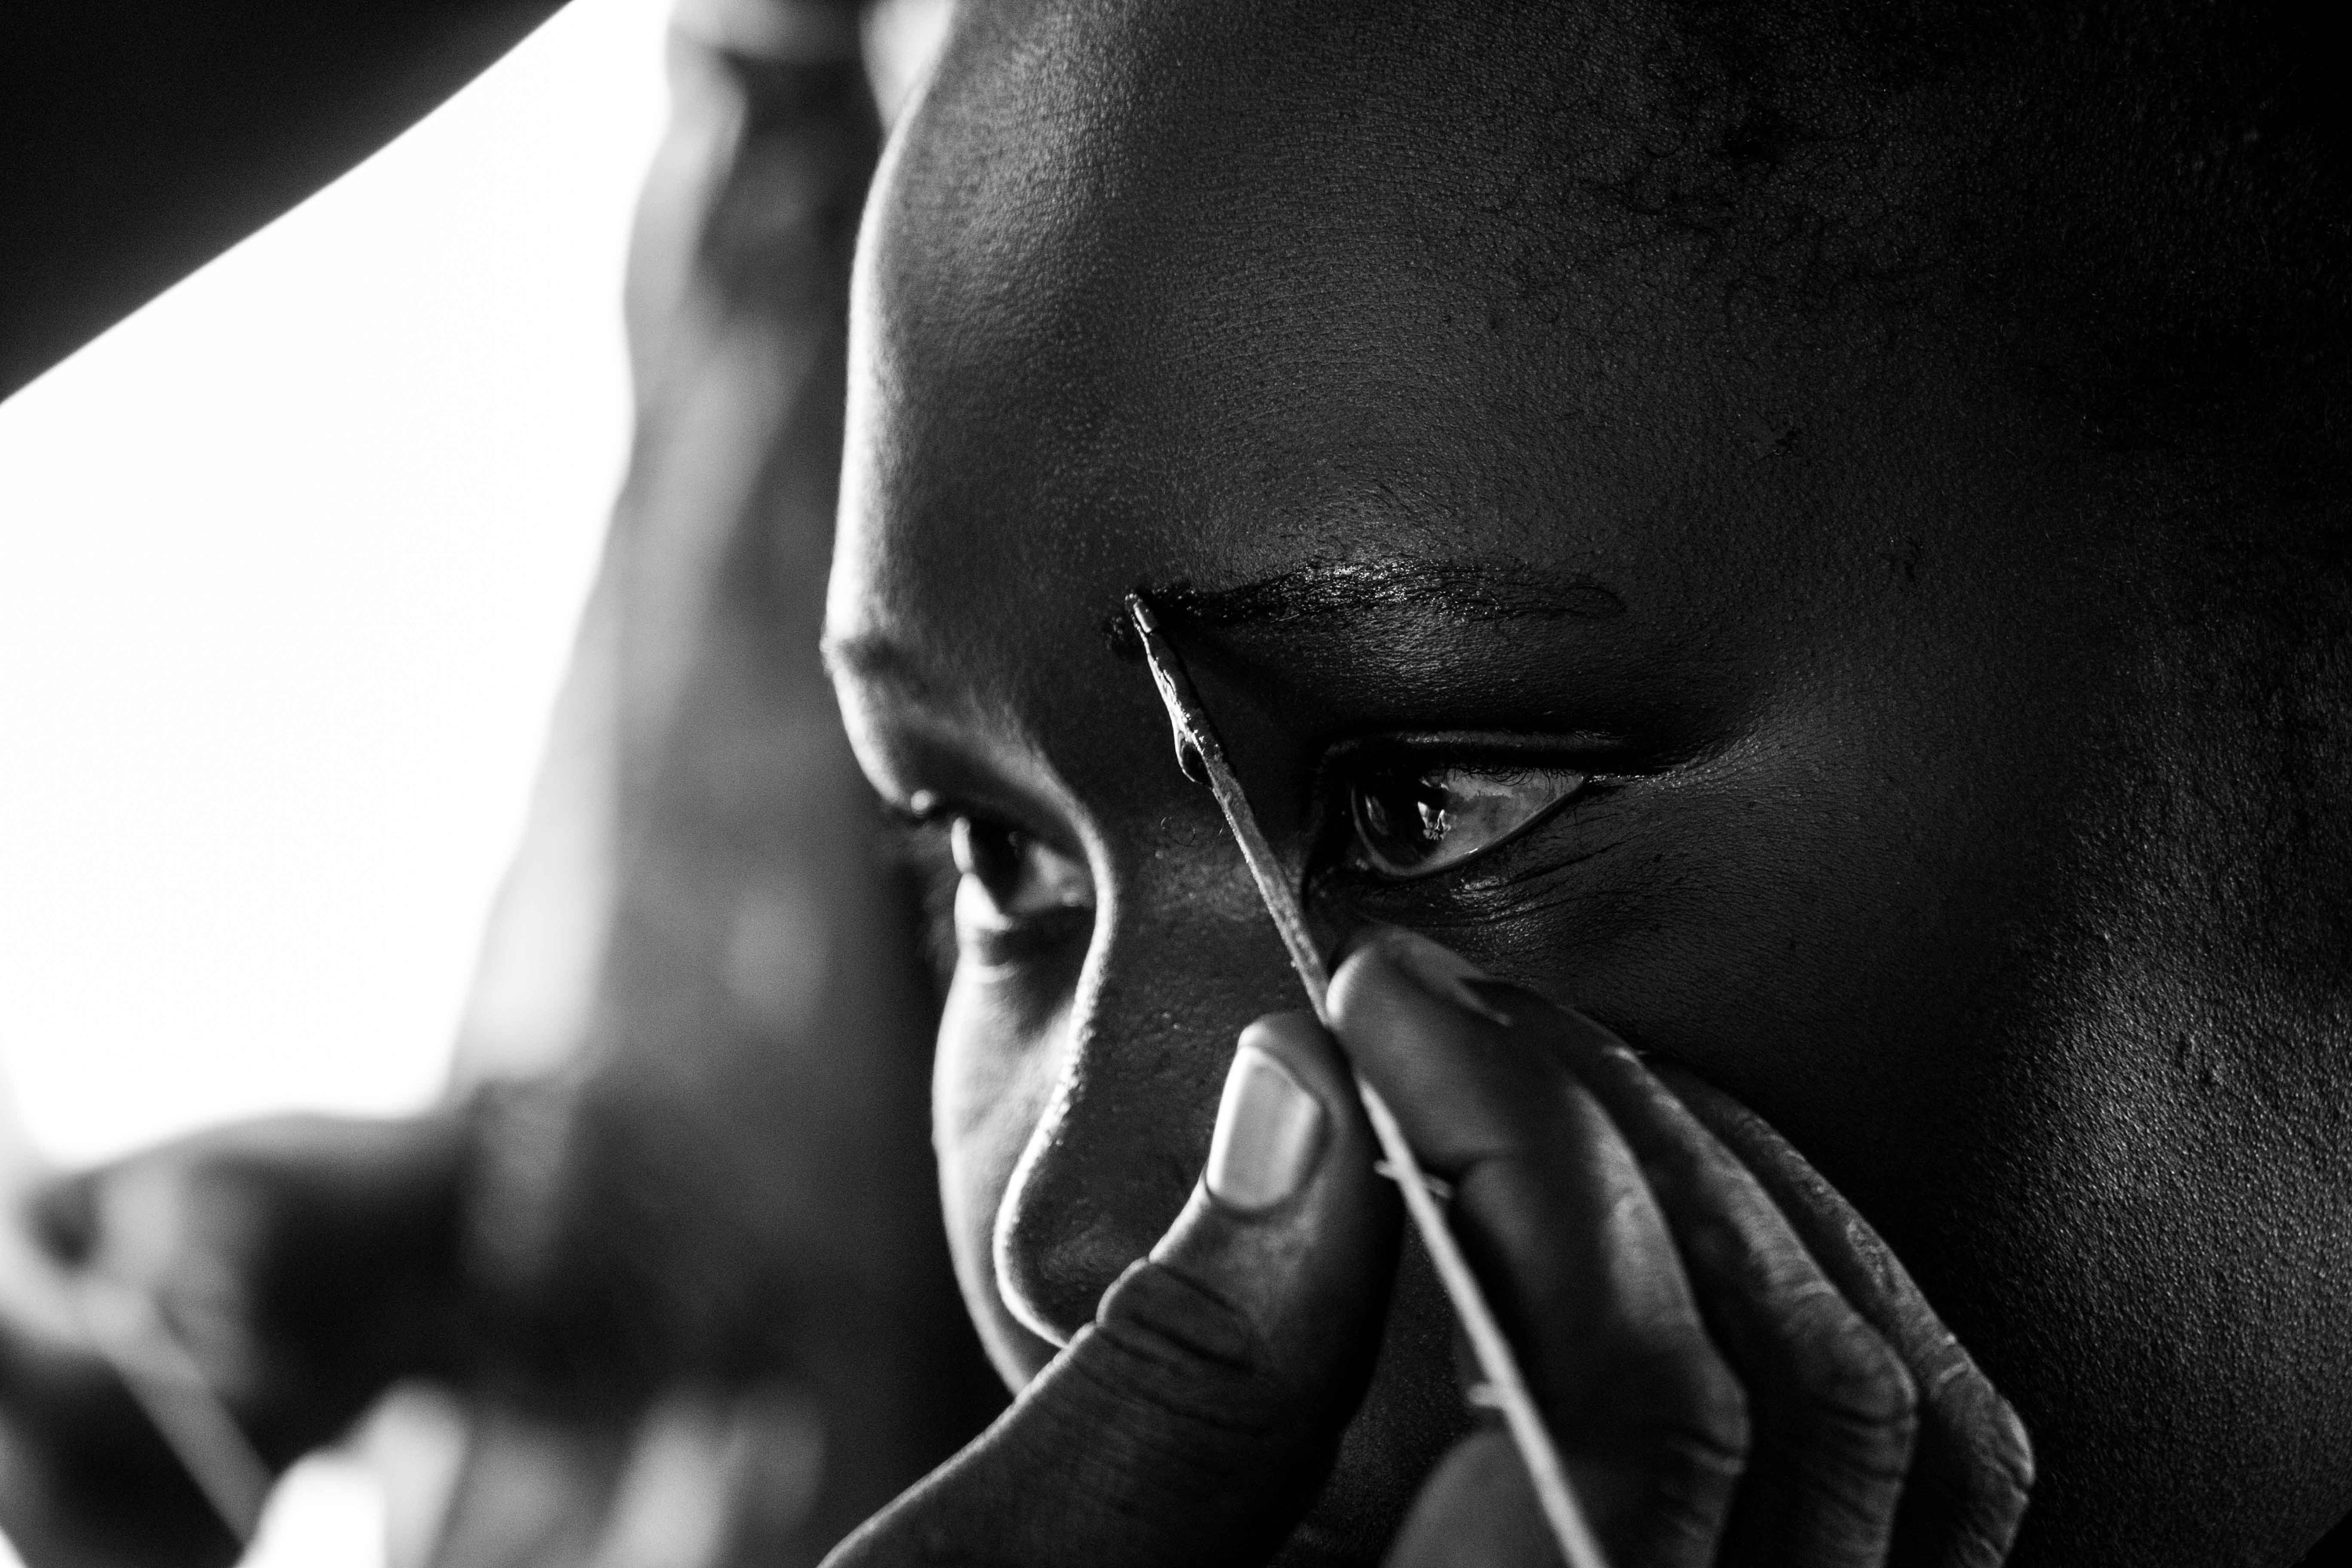 A young Shilluk woman has her eyebrows dyed with black henna in a tent designated a 'women-friendly space' inside Malakal PoC camp. Women in the camp have few opportunities to escape the grim conditions, and they come to this space to relax, socialise and exchange information. [Ashley Hamer/Al Jazeera]